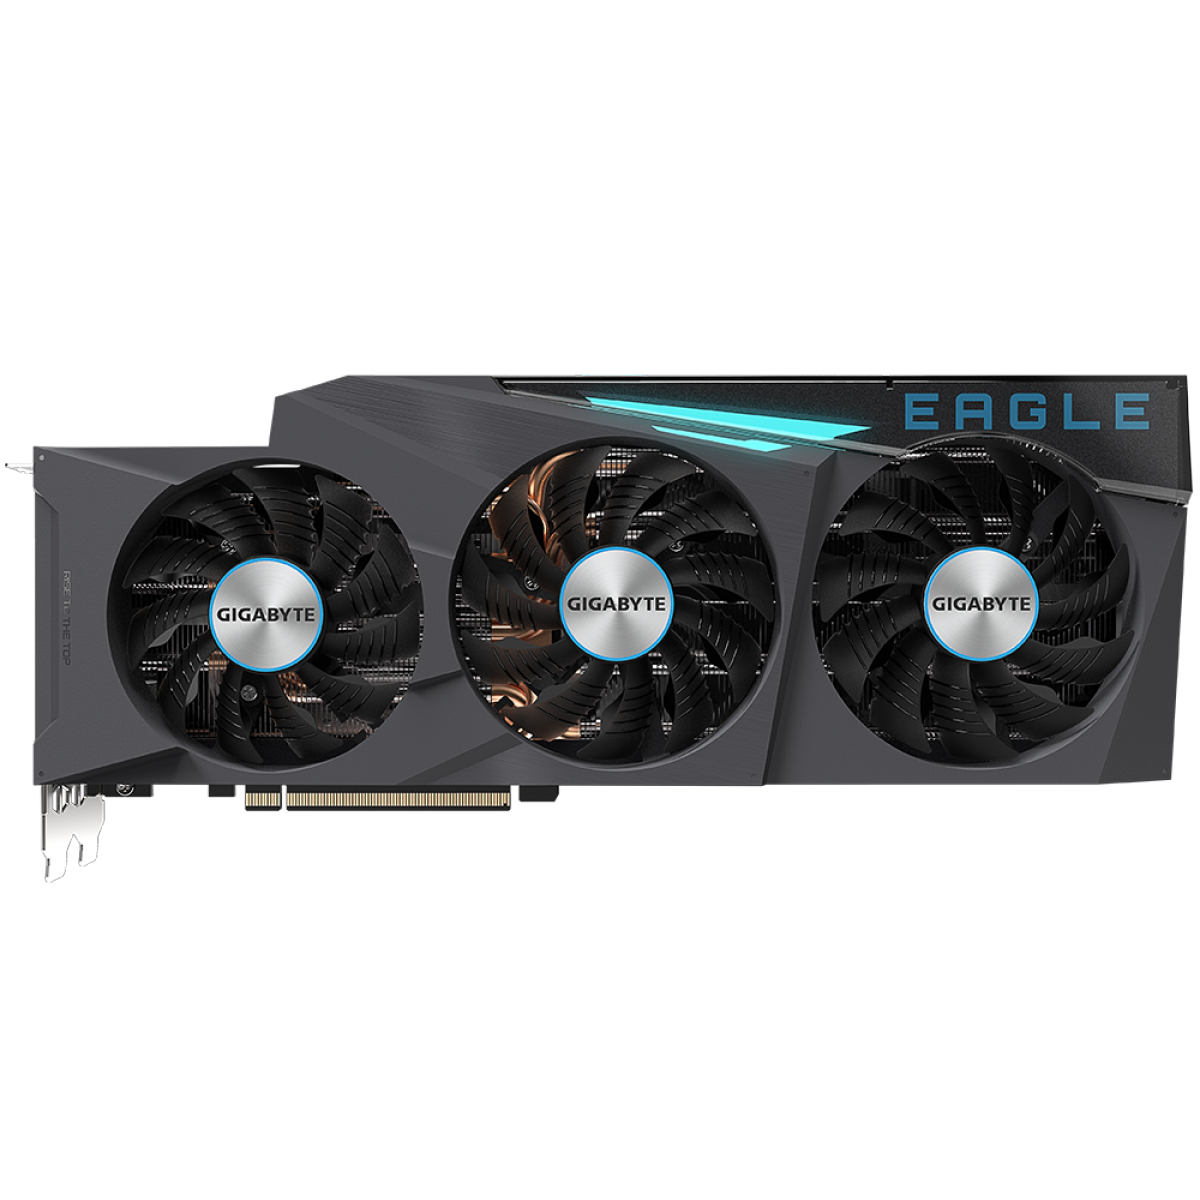 Placa de Vídeo Gigabyte GeForce, RTX 3080 Eagle OC 10G, 10GB, GDDR6X, 320Bit, GV-N3080EAGLEOC-10GD